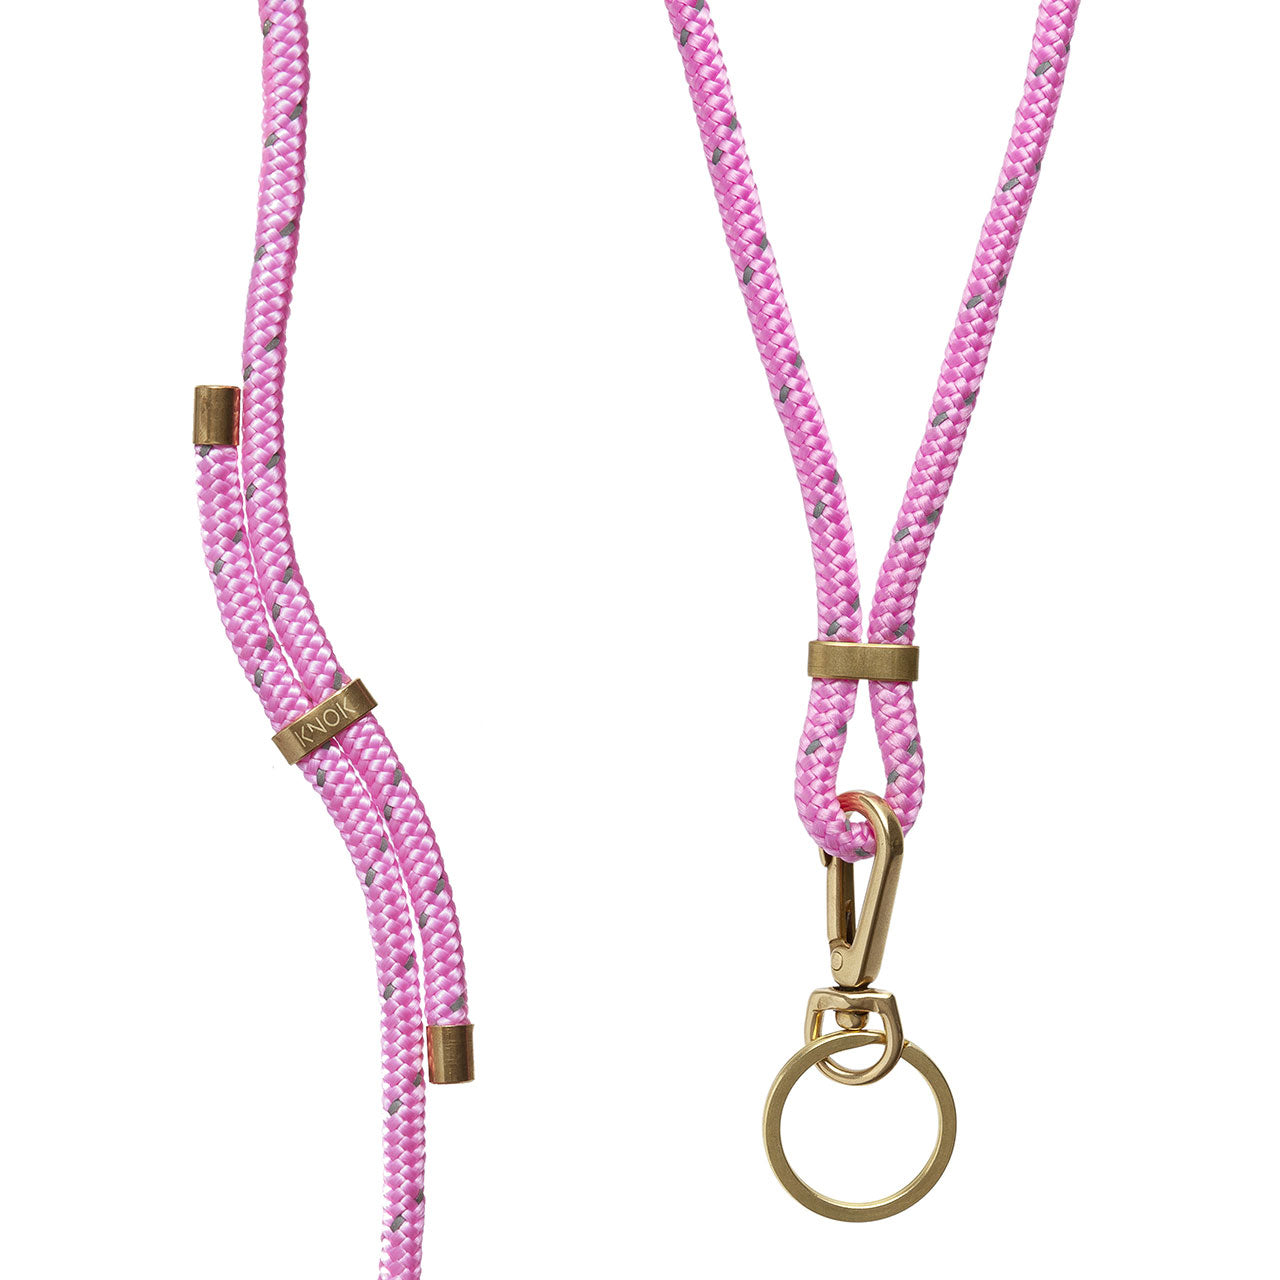 KEY HOLDER (PINK REFLECT) - KNOK STORE